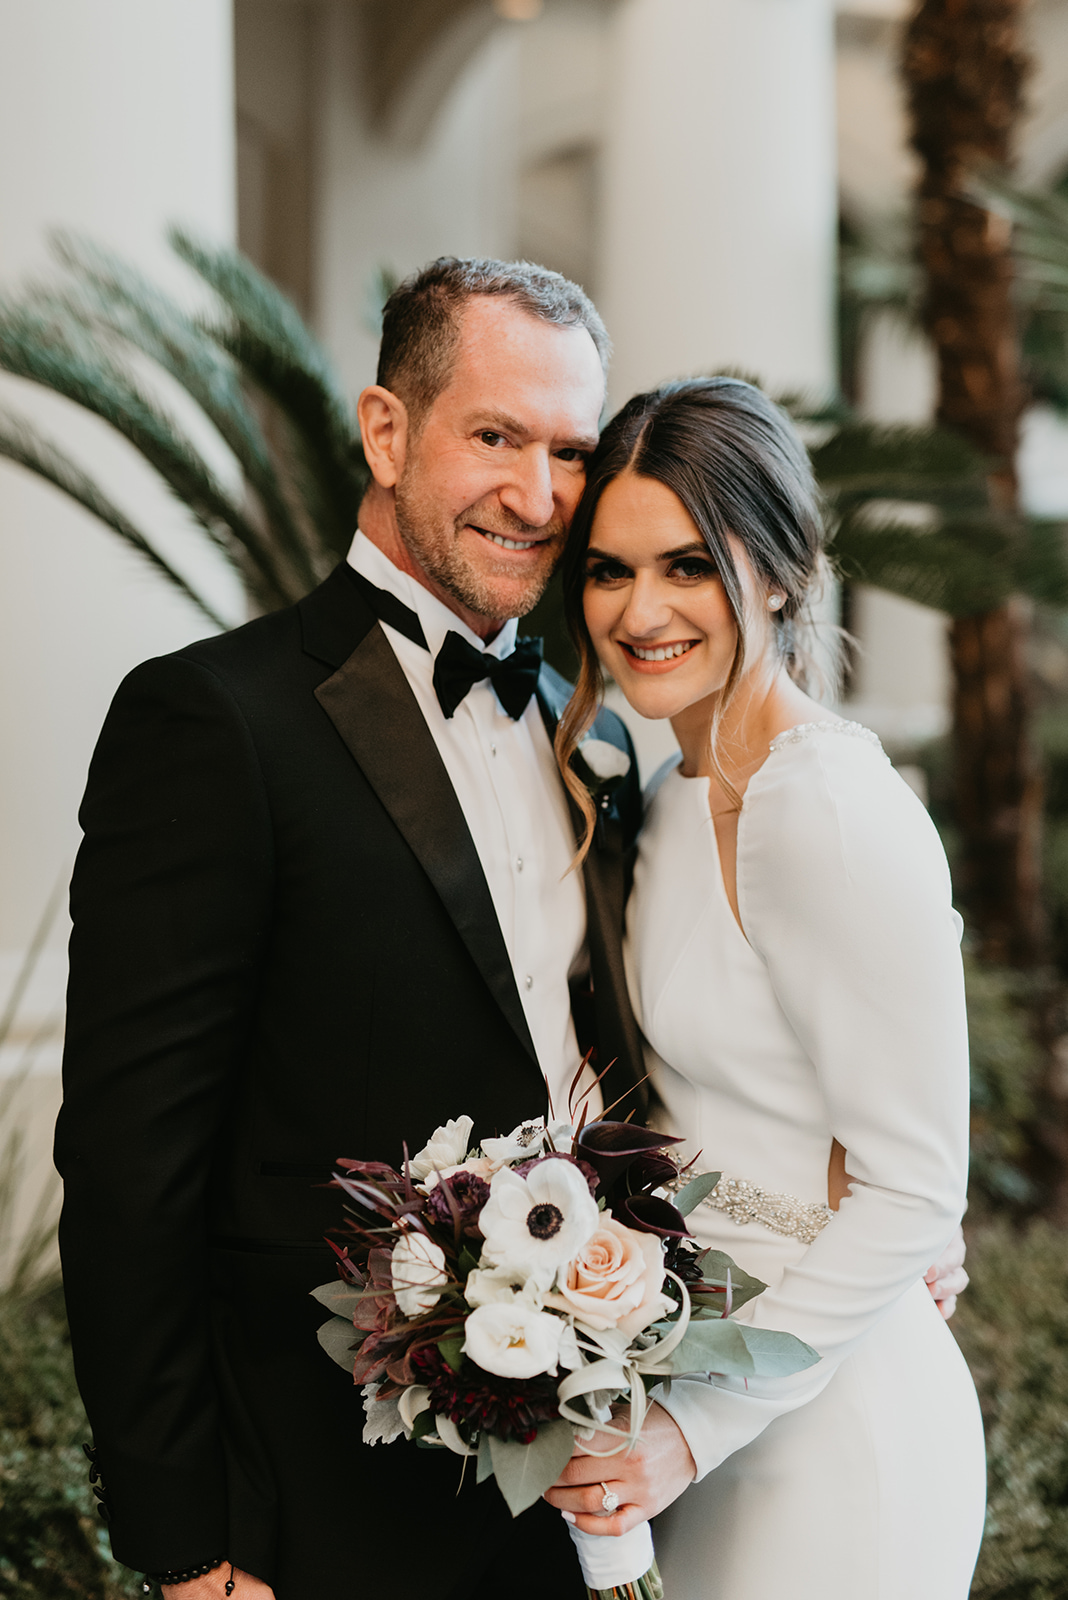 Malm Wedding in Las Vegas, NV - Bride and Dad